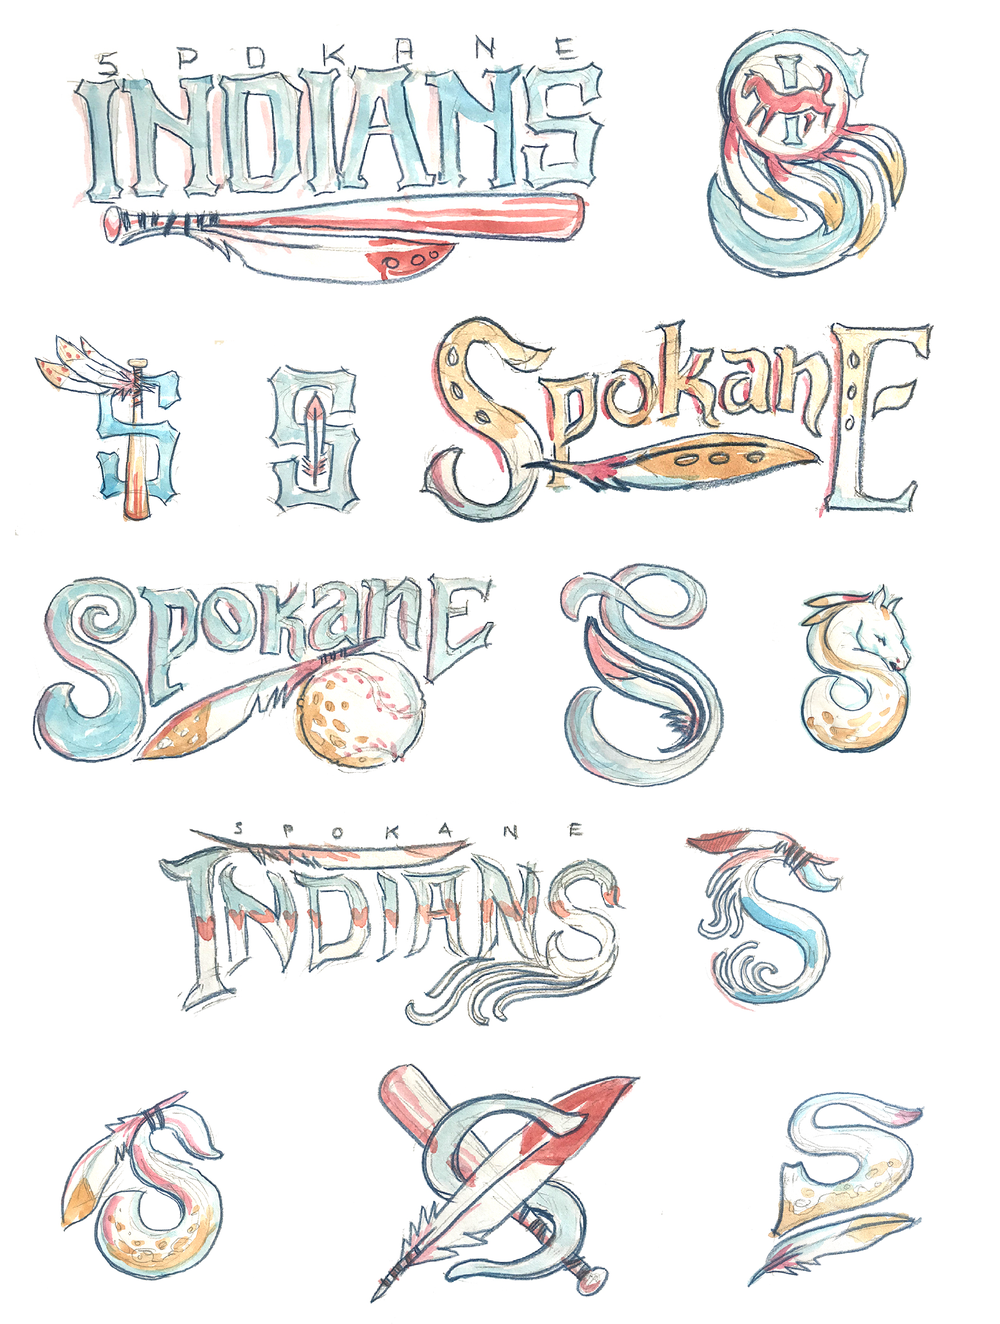 Spokane-2-Brand_Sketches-1.png